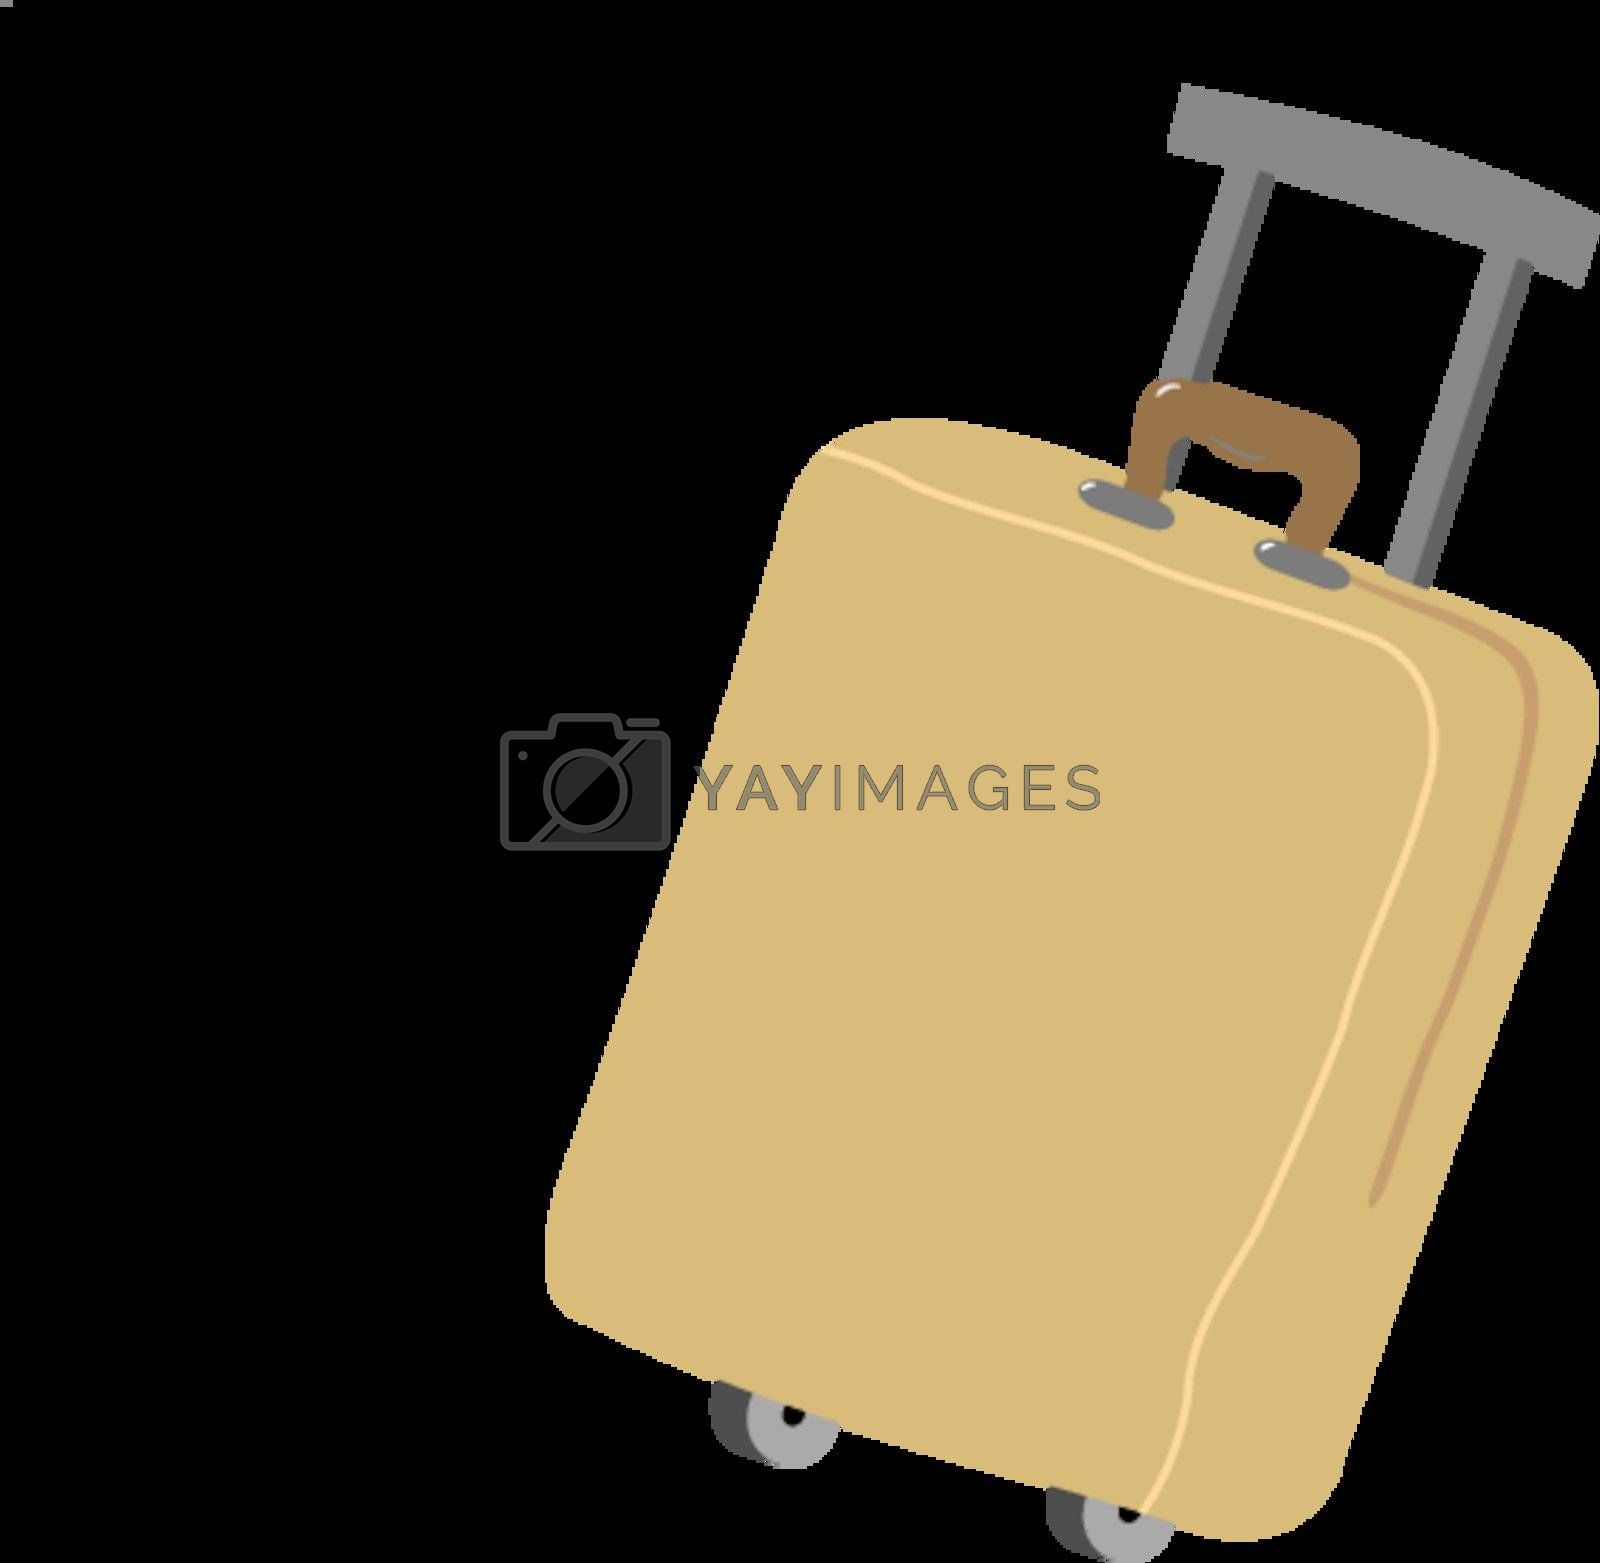 Royalty free image of Suitcase by Perysty